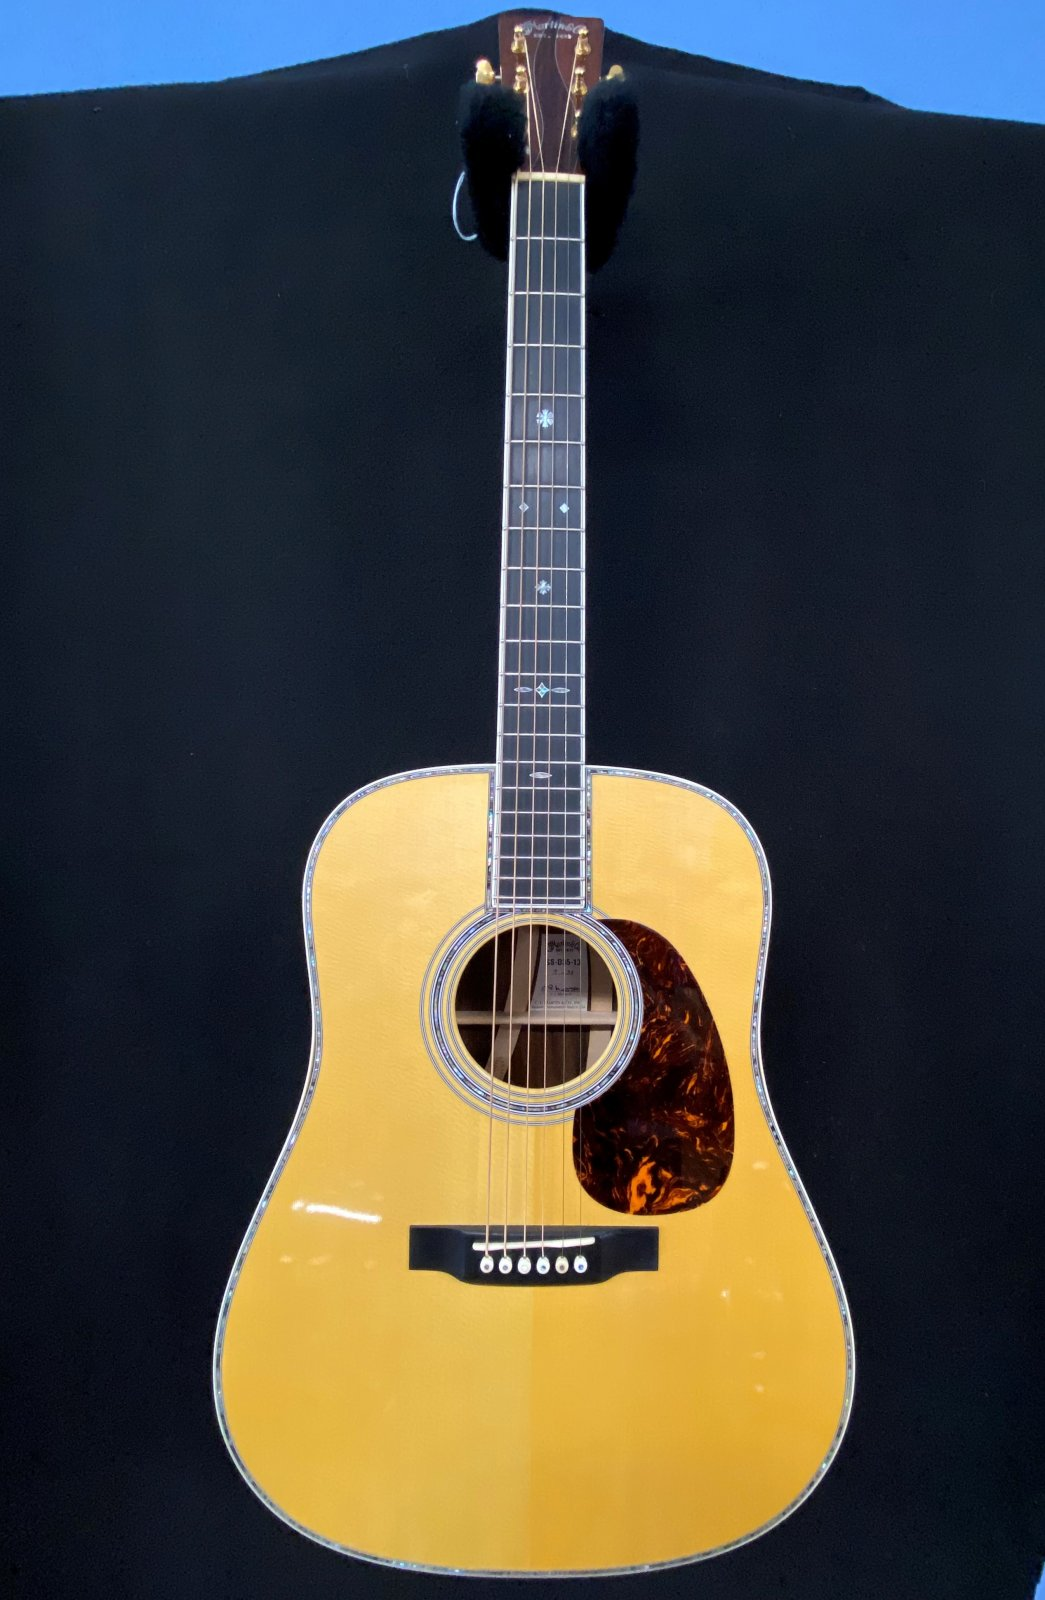 Martin D35 50th Anniversary LTD 1 of 30